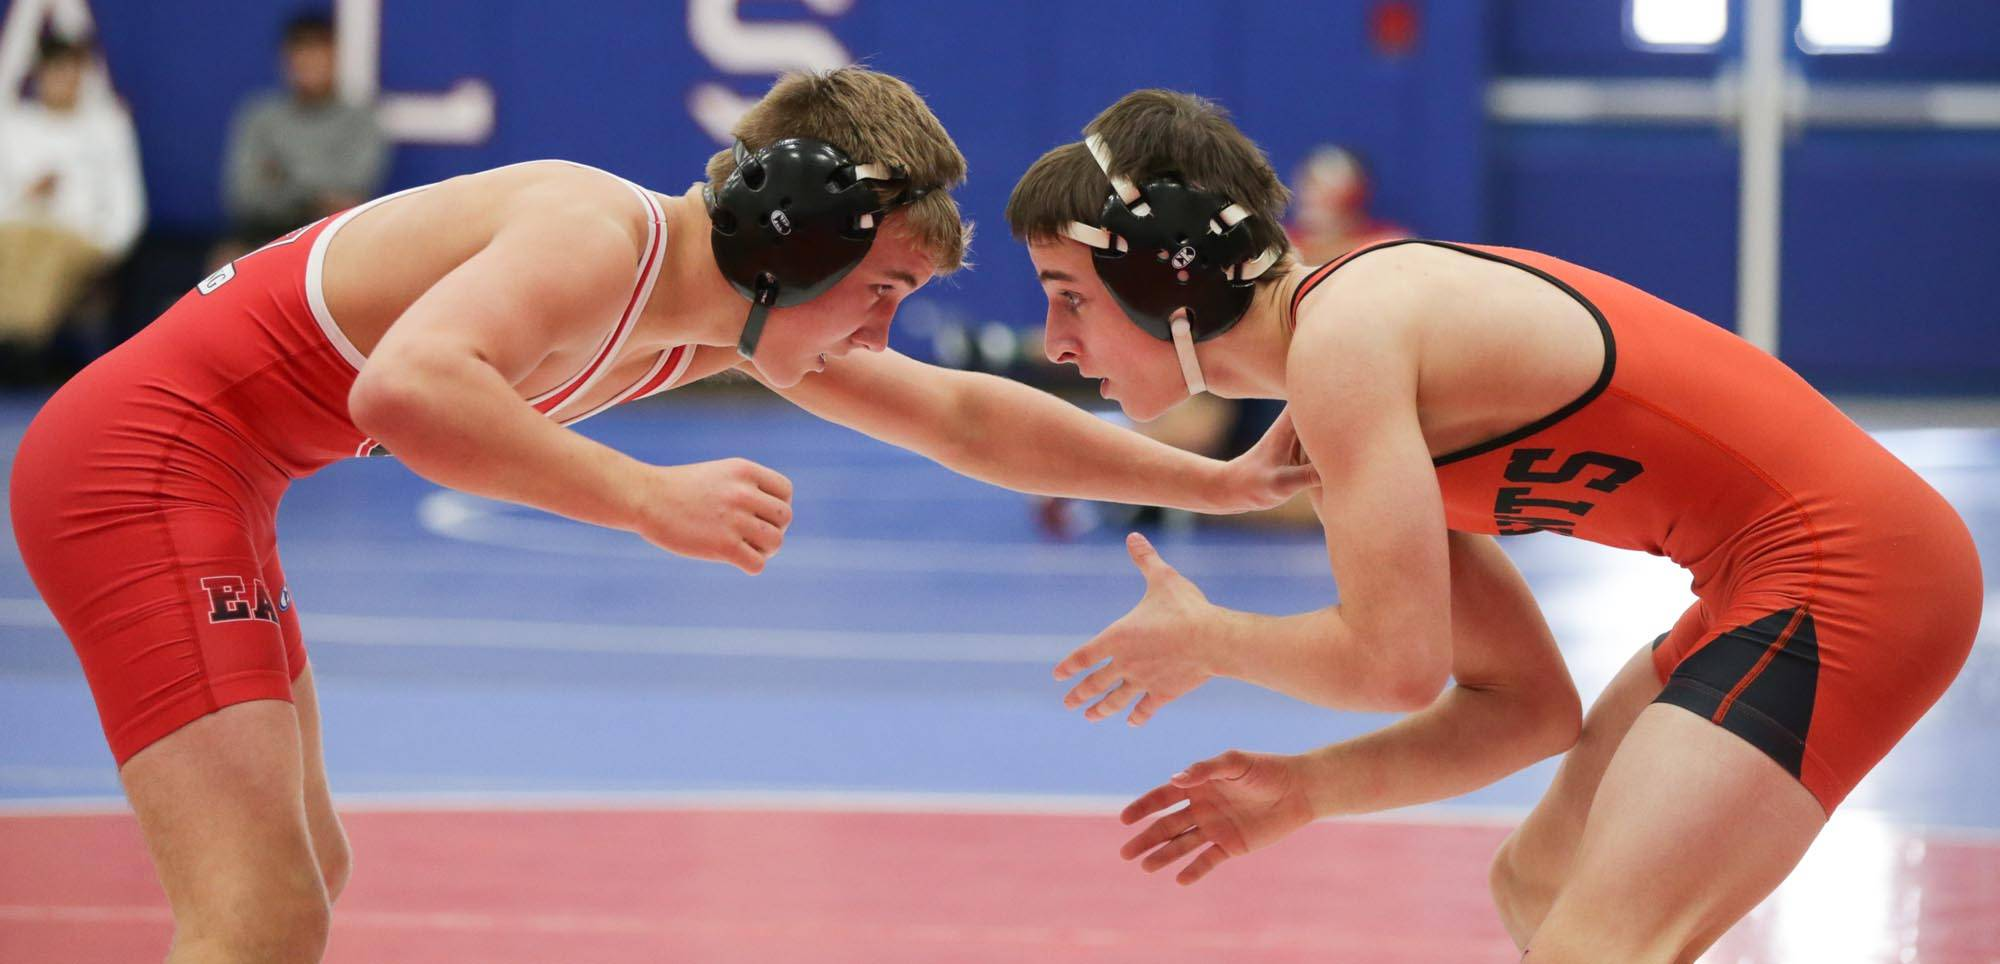 Glenbard East's Reece Martin and St. Charles East's Ben Anderson compete in the 113-pound wrestling final at Larkin Saturday.